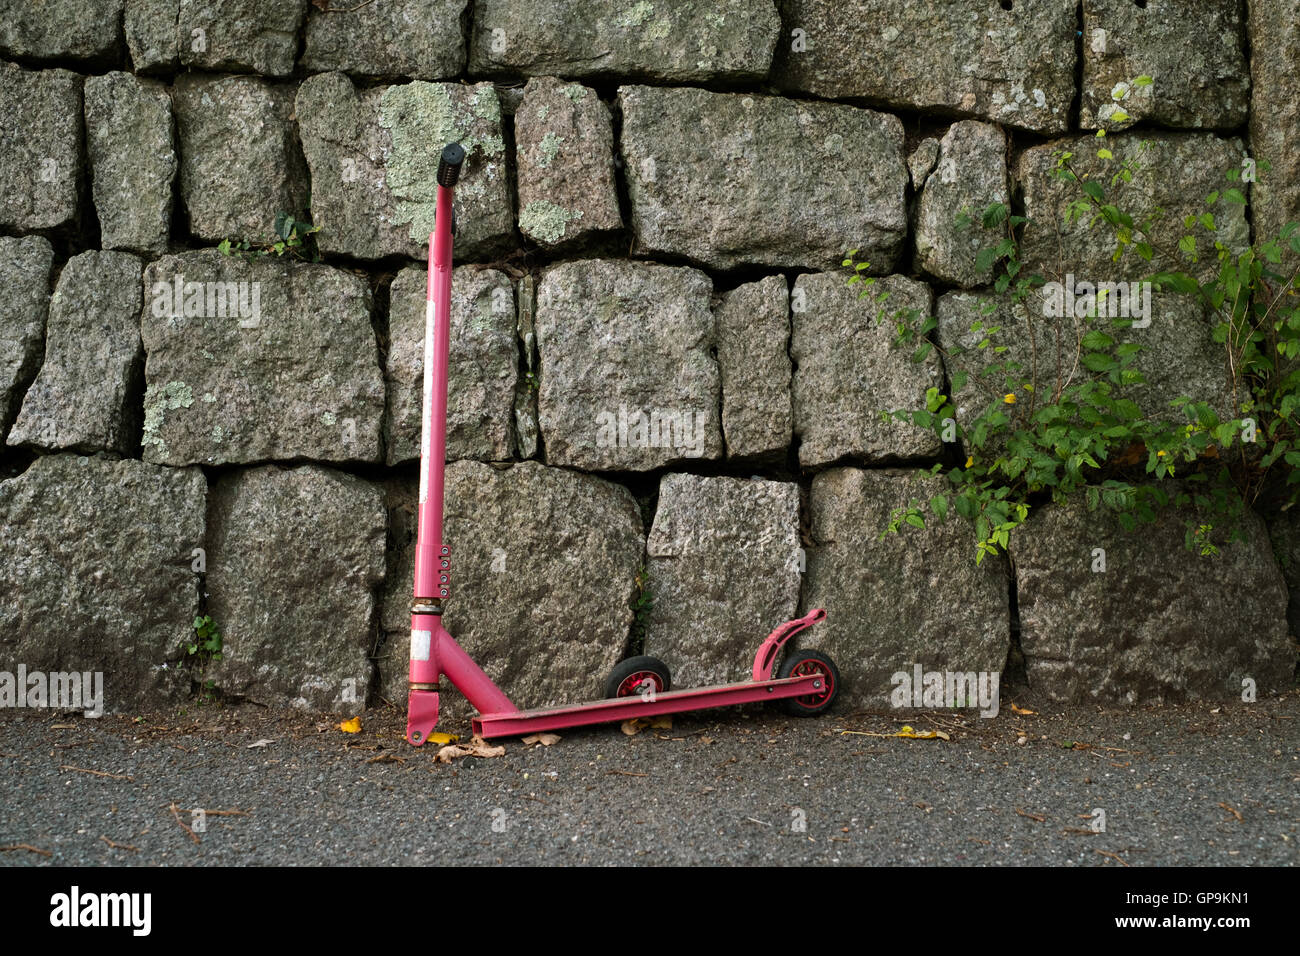 A child's pink scooter lays abandoned against a wall with a broken front wheel. - Stock Image